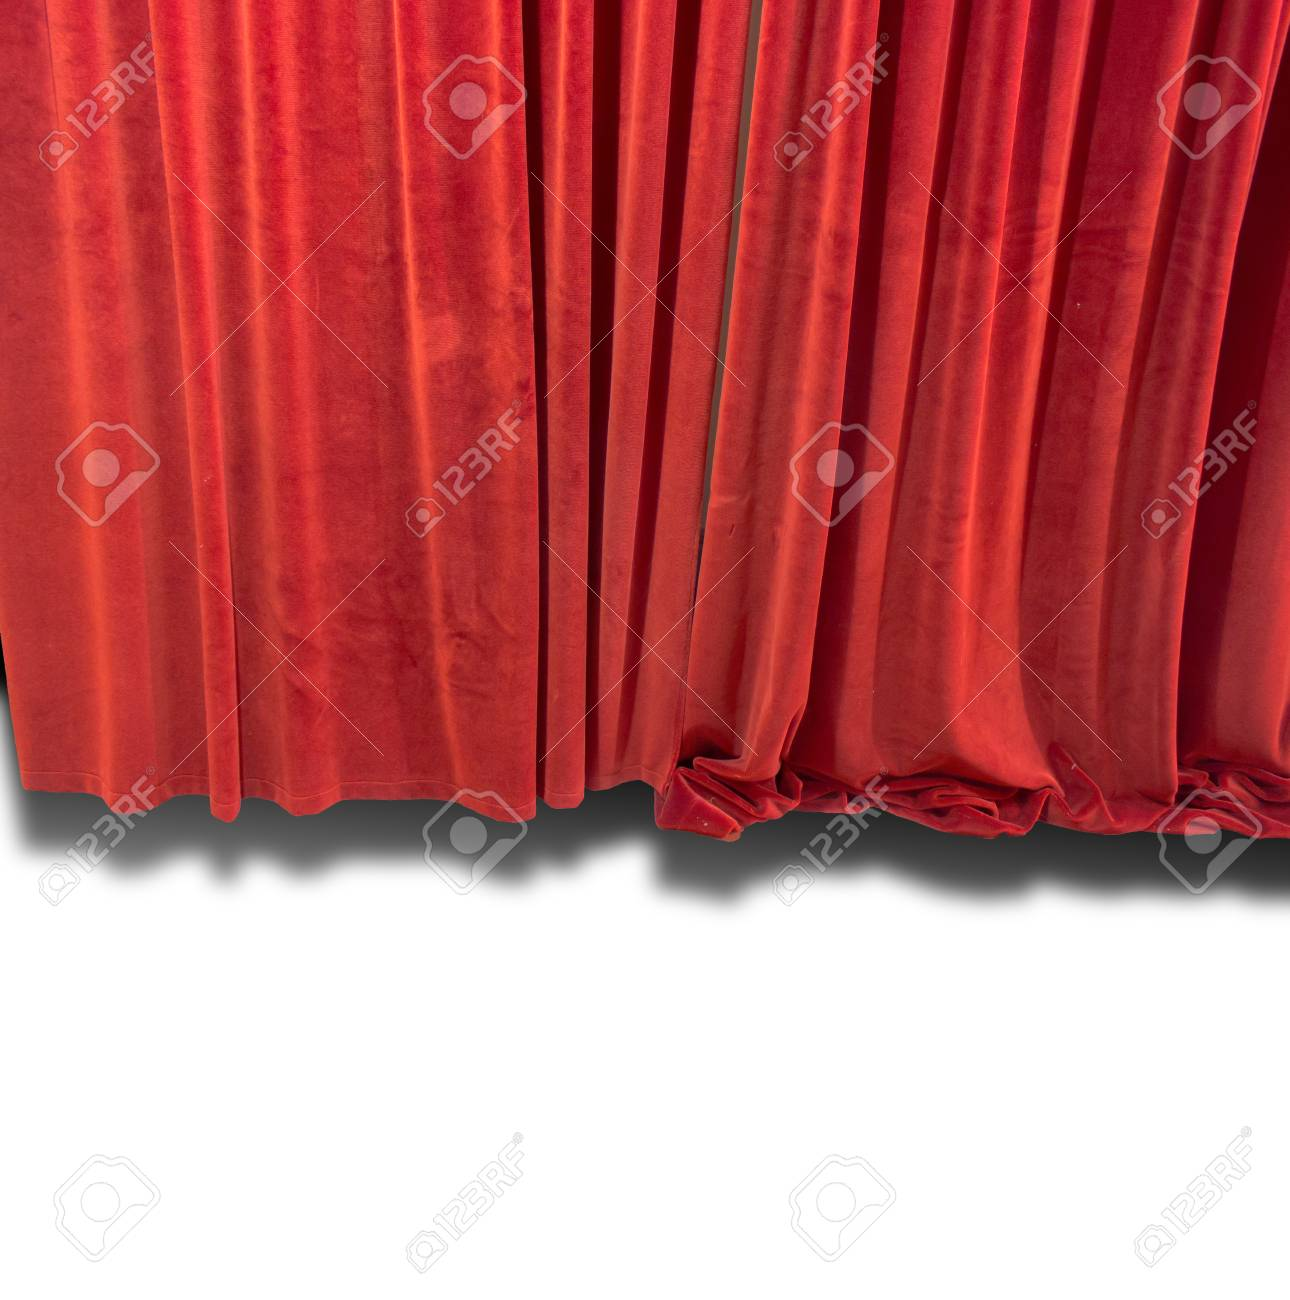 Red Curtain isolated - 20615162